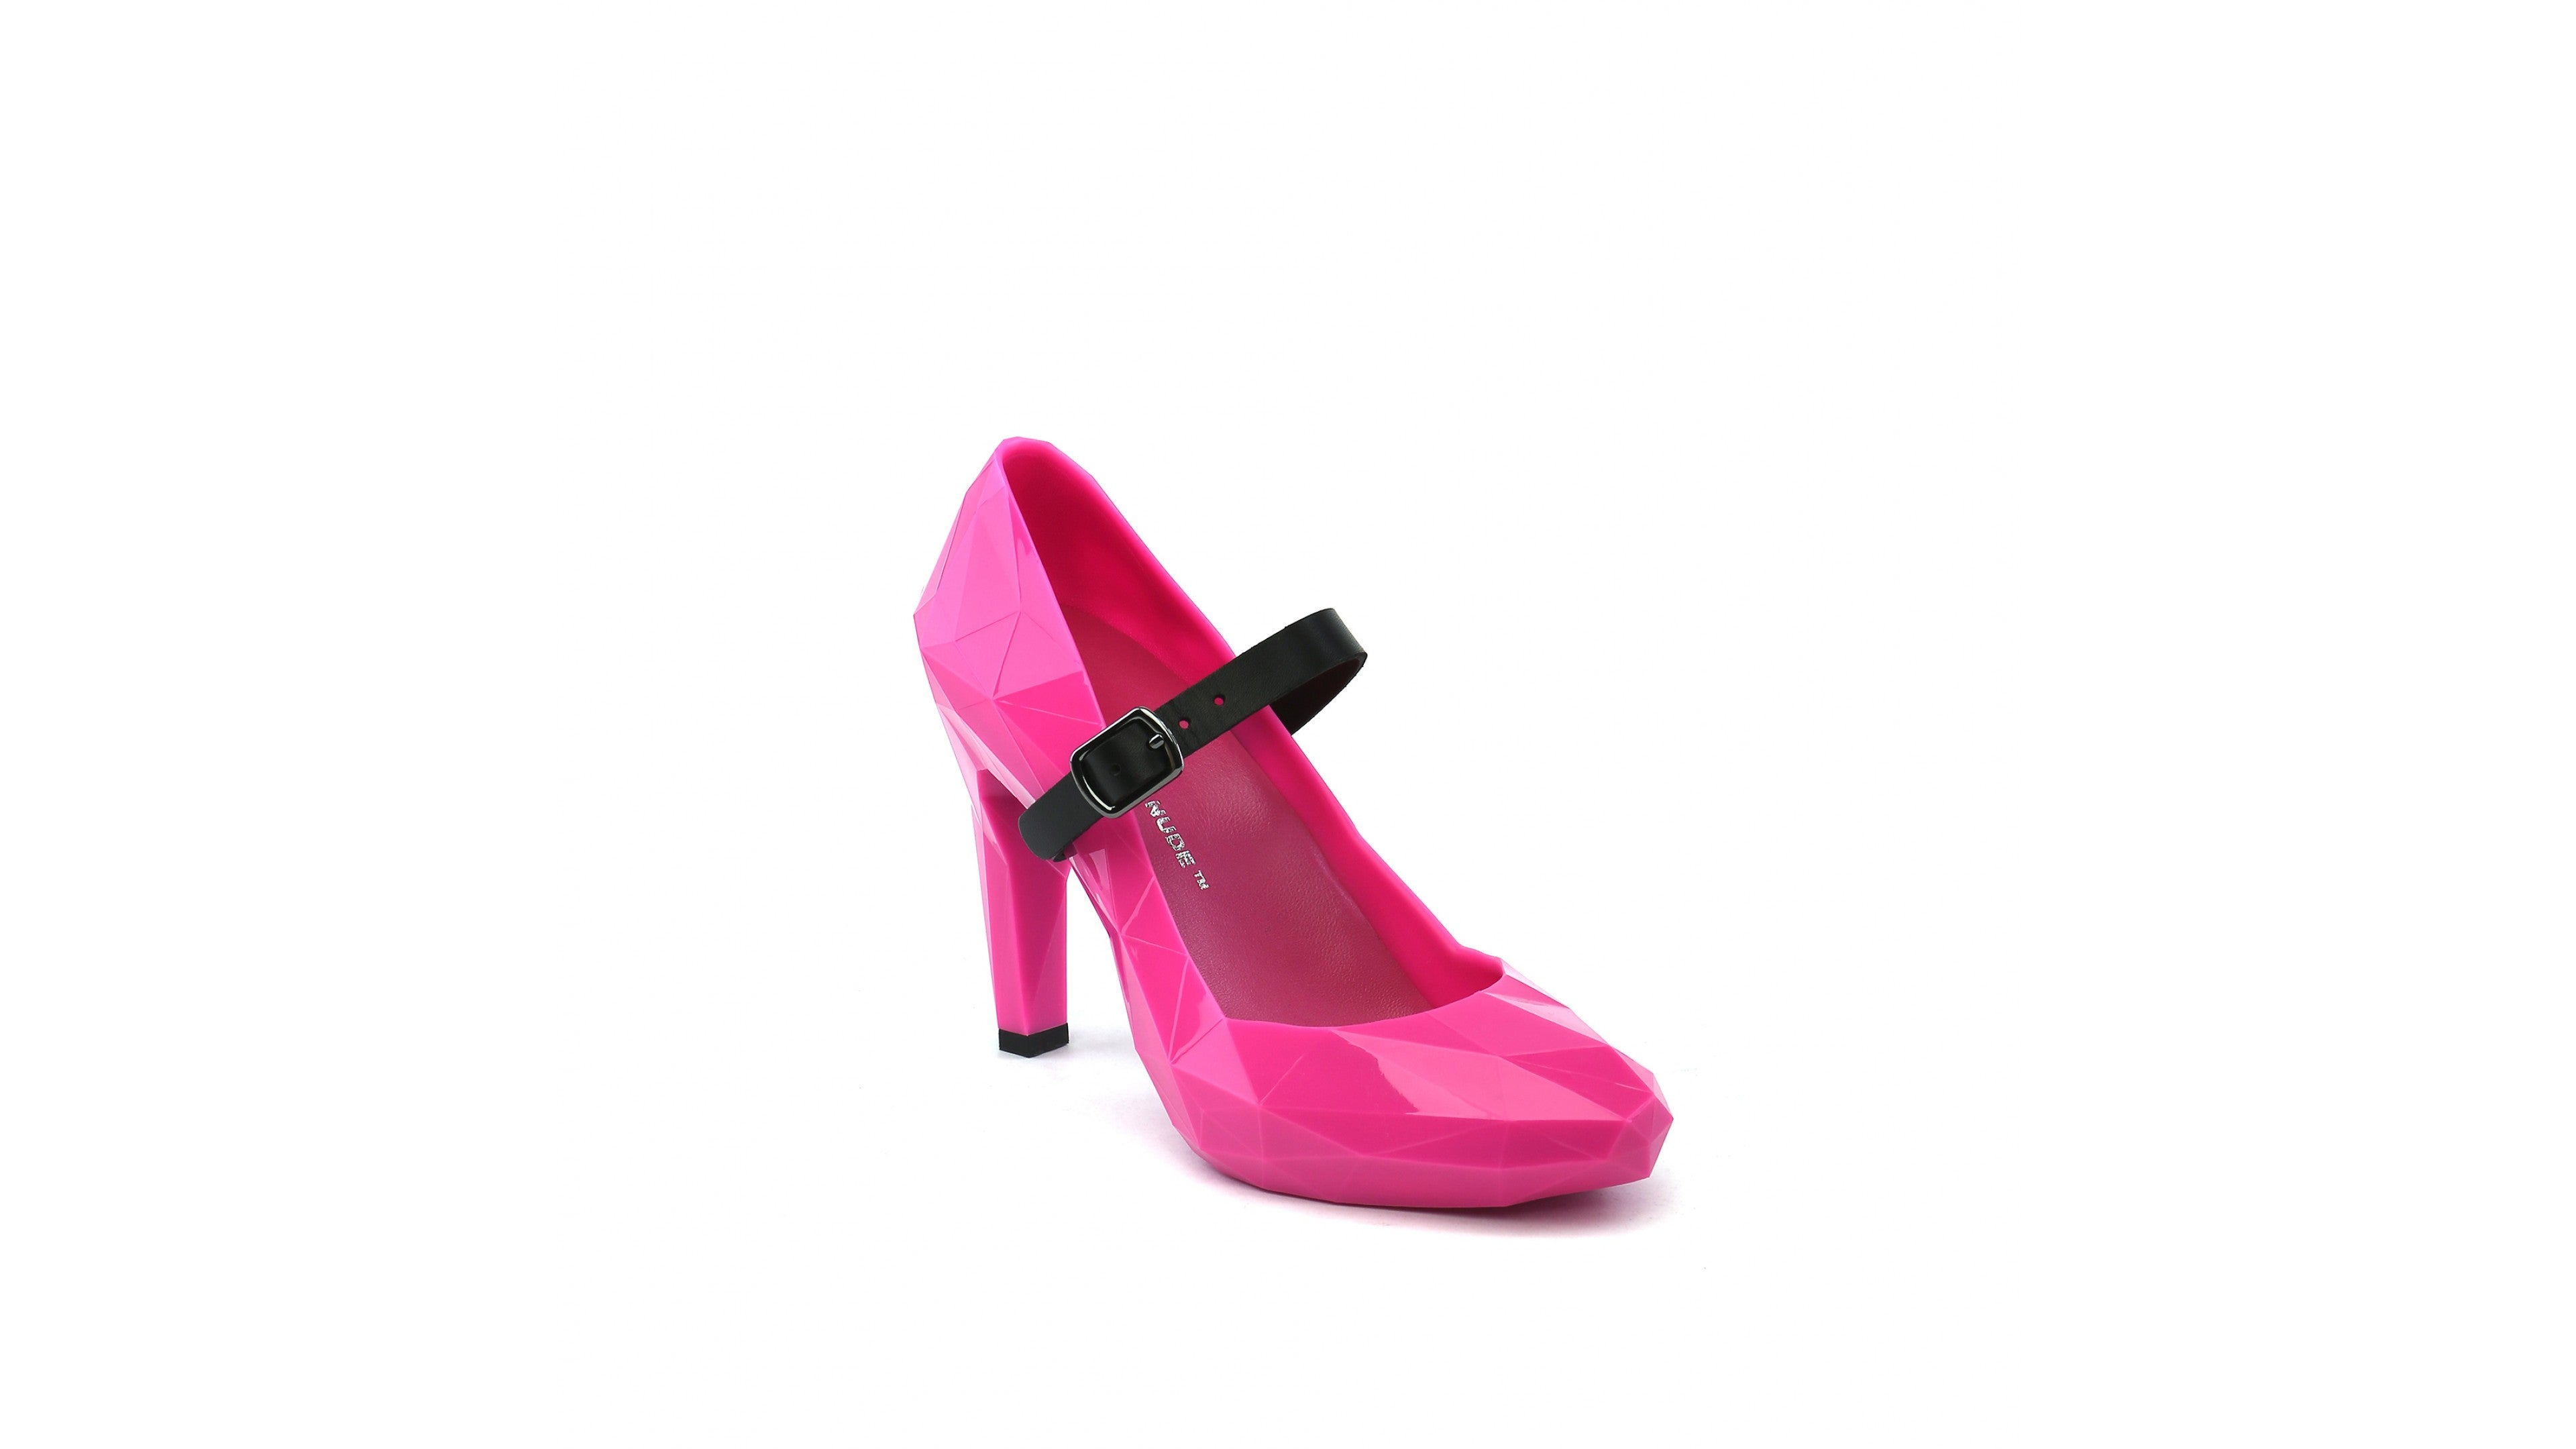 United Nude pink Lo Res Pump plastic high heel shoe